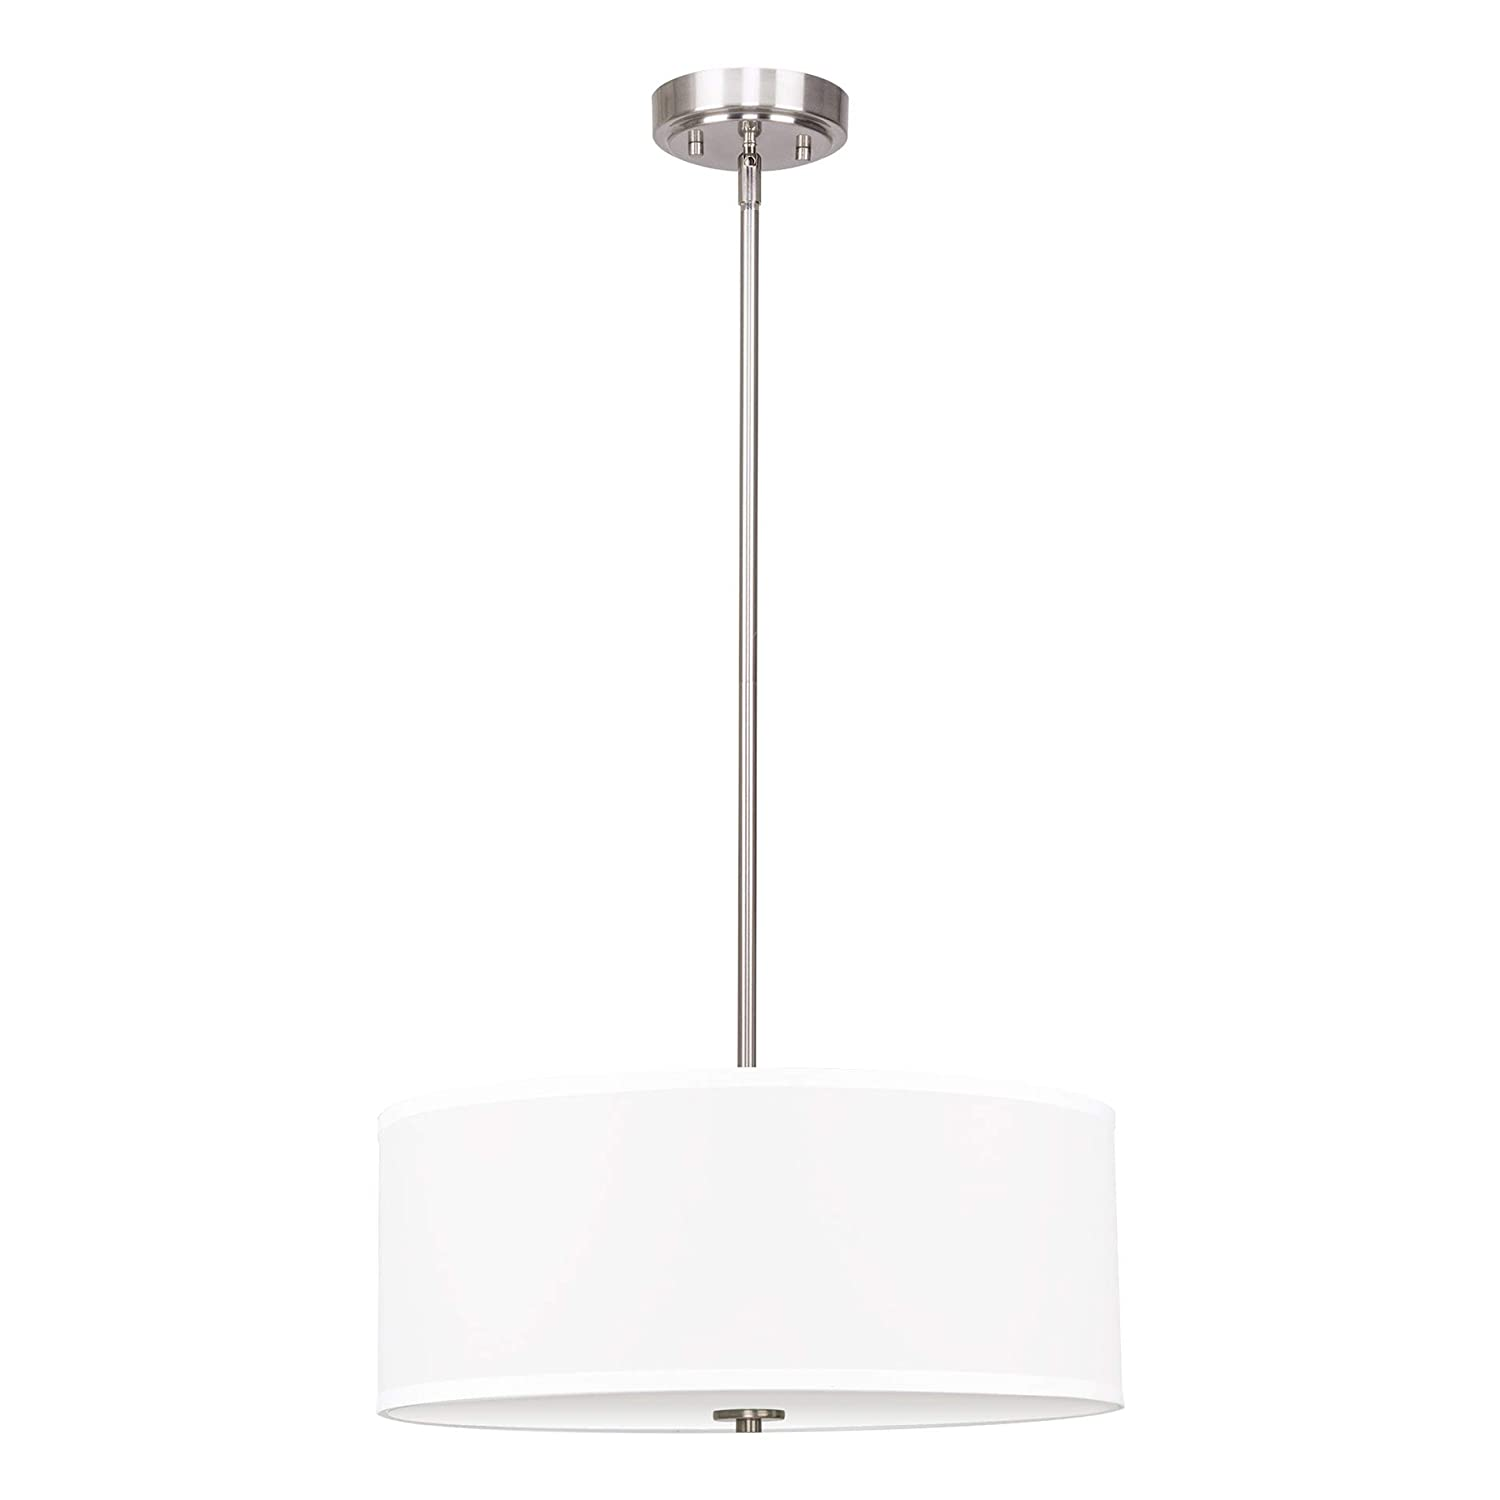 "Kira Home Nolan 18"" Classic Drum Chandelier, Stem-Hung Adjustable Height, White Fabric Shade + Glass Diffuser, Brushed Nickel Finish"